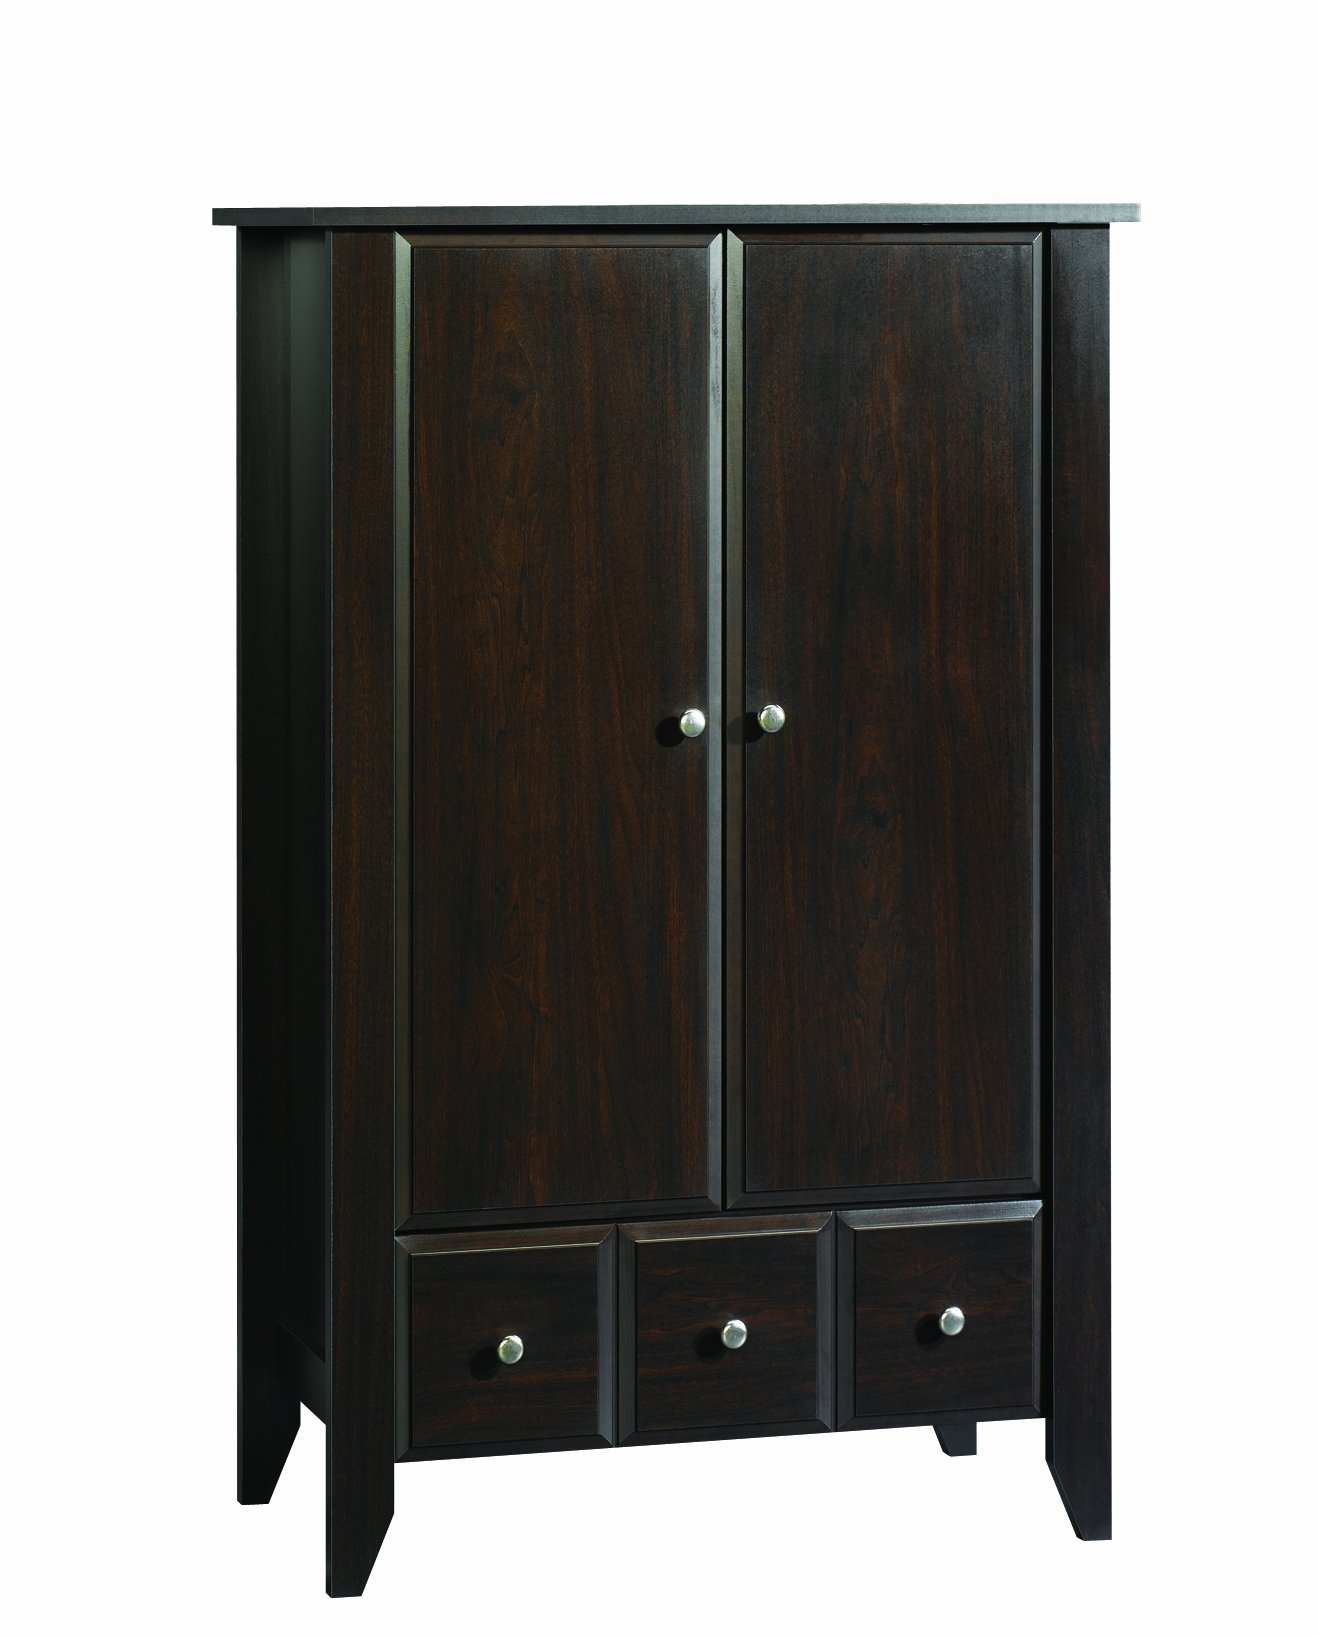 Child Craft Shoal Creek Ready-to-Assemble Armoire, Jamocha Wood Finish